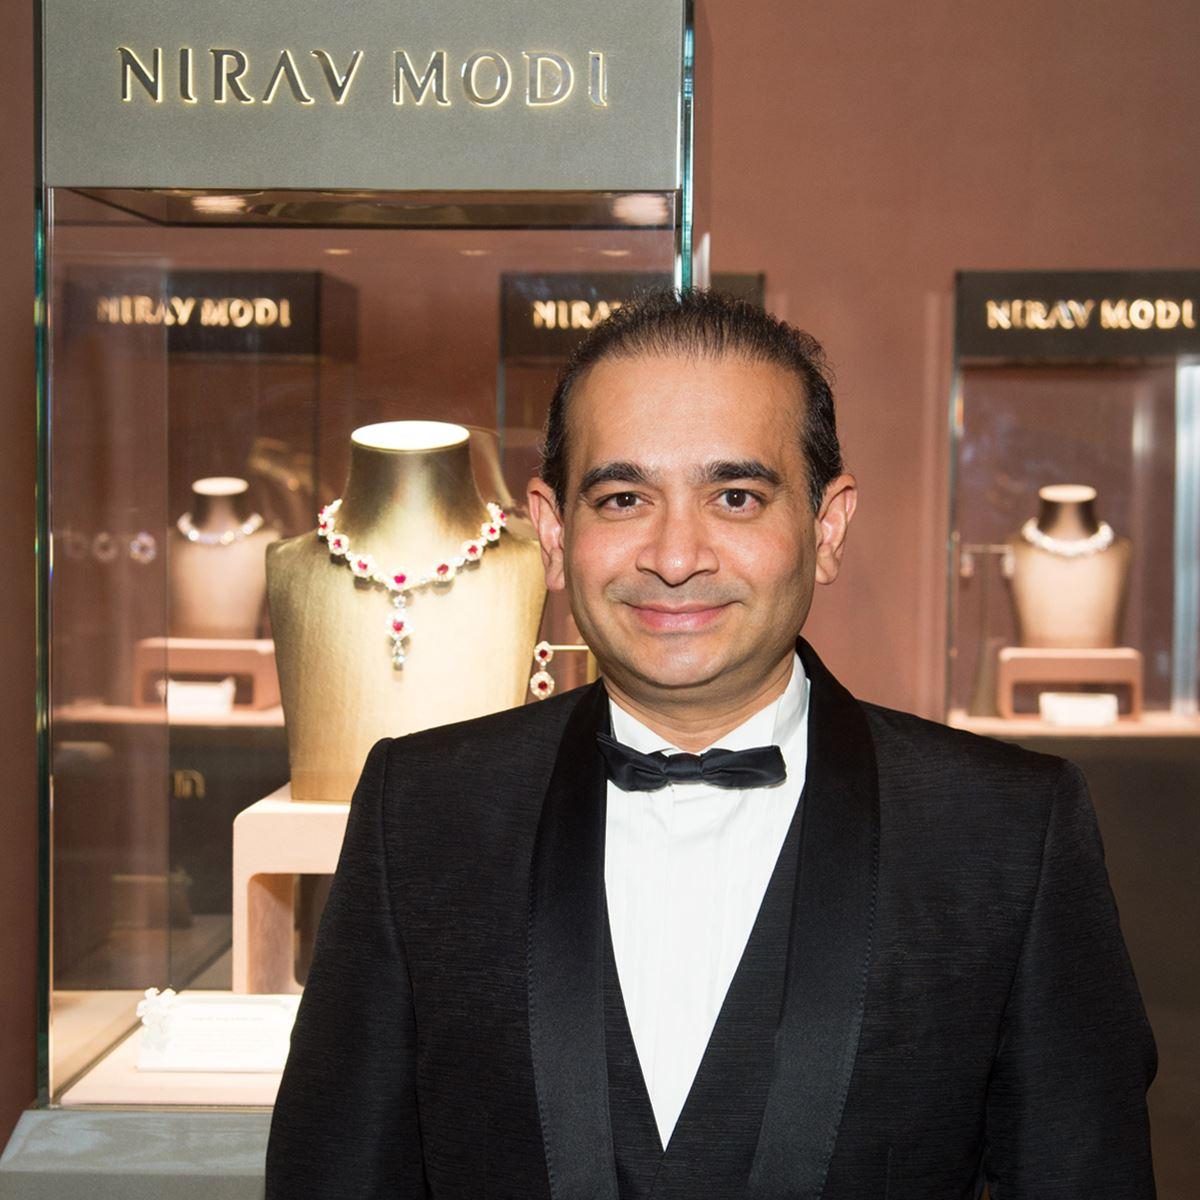 The case of diamond merchant Nirav Modi, wanted in India on fraud and money laundering charges, is also covered in detail. Photo courtesy: Facebook/Nirav Modi